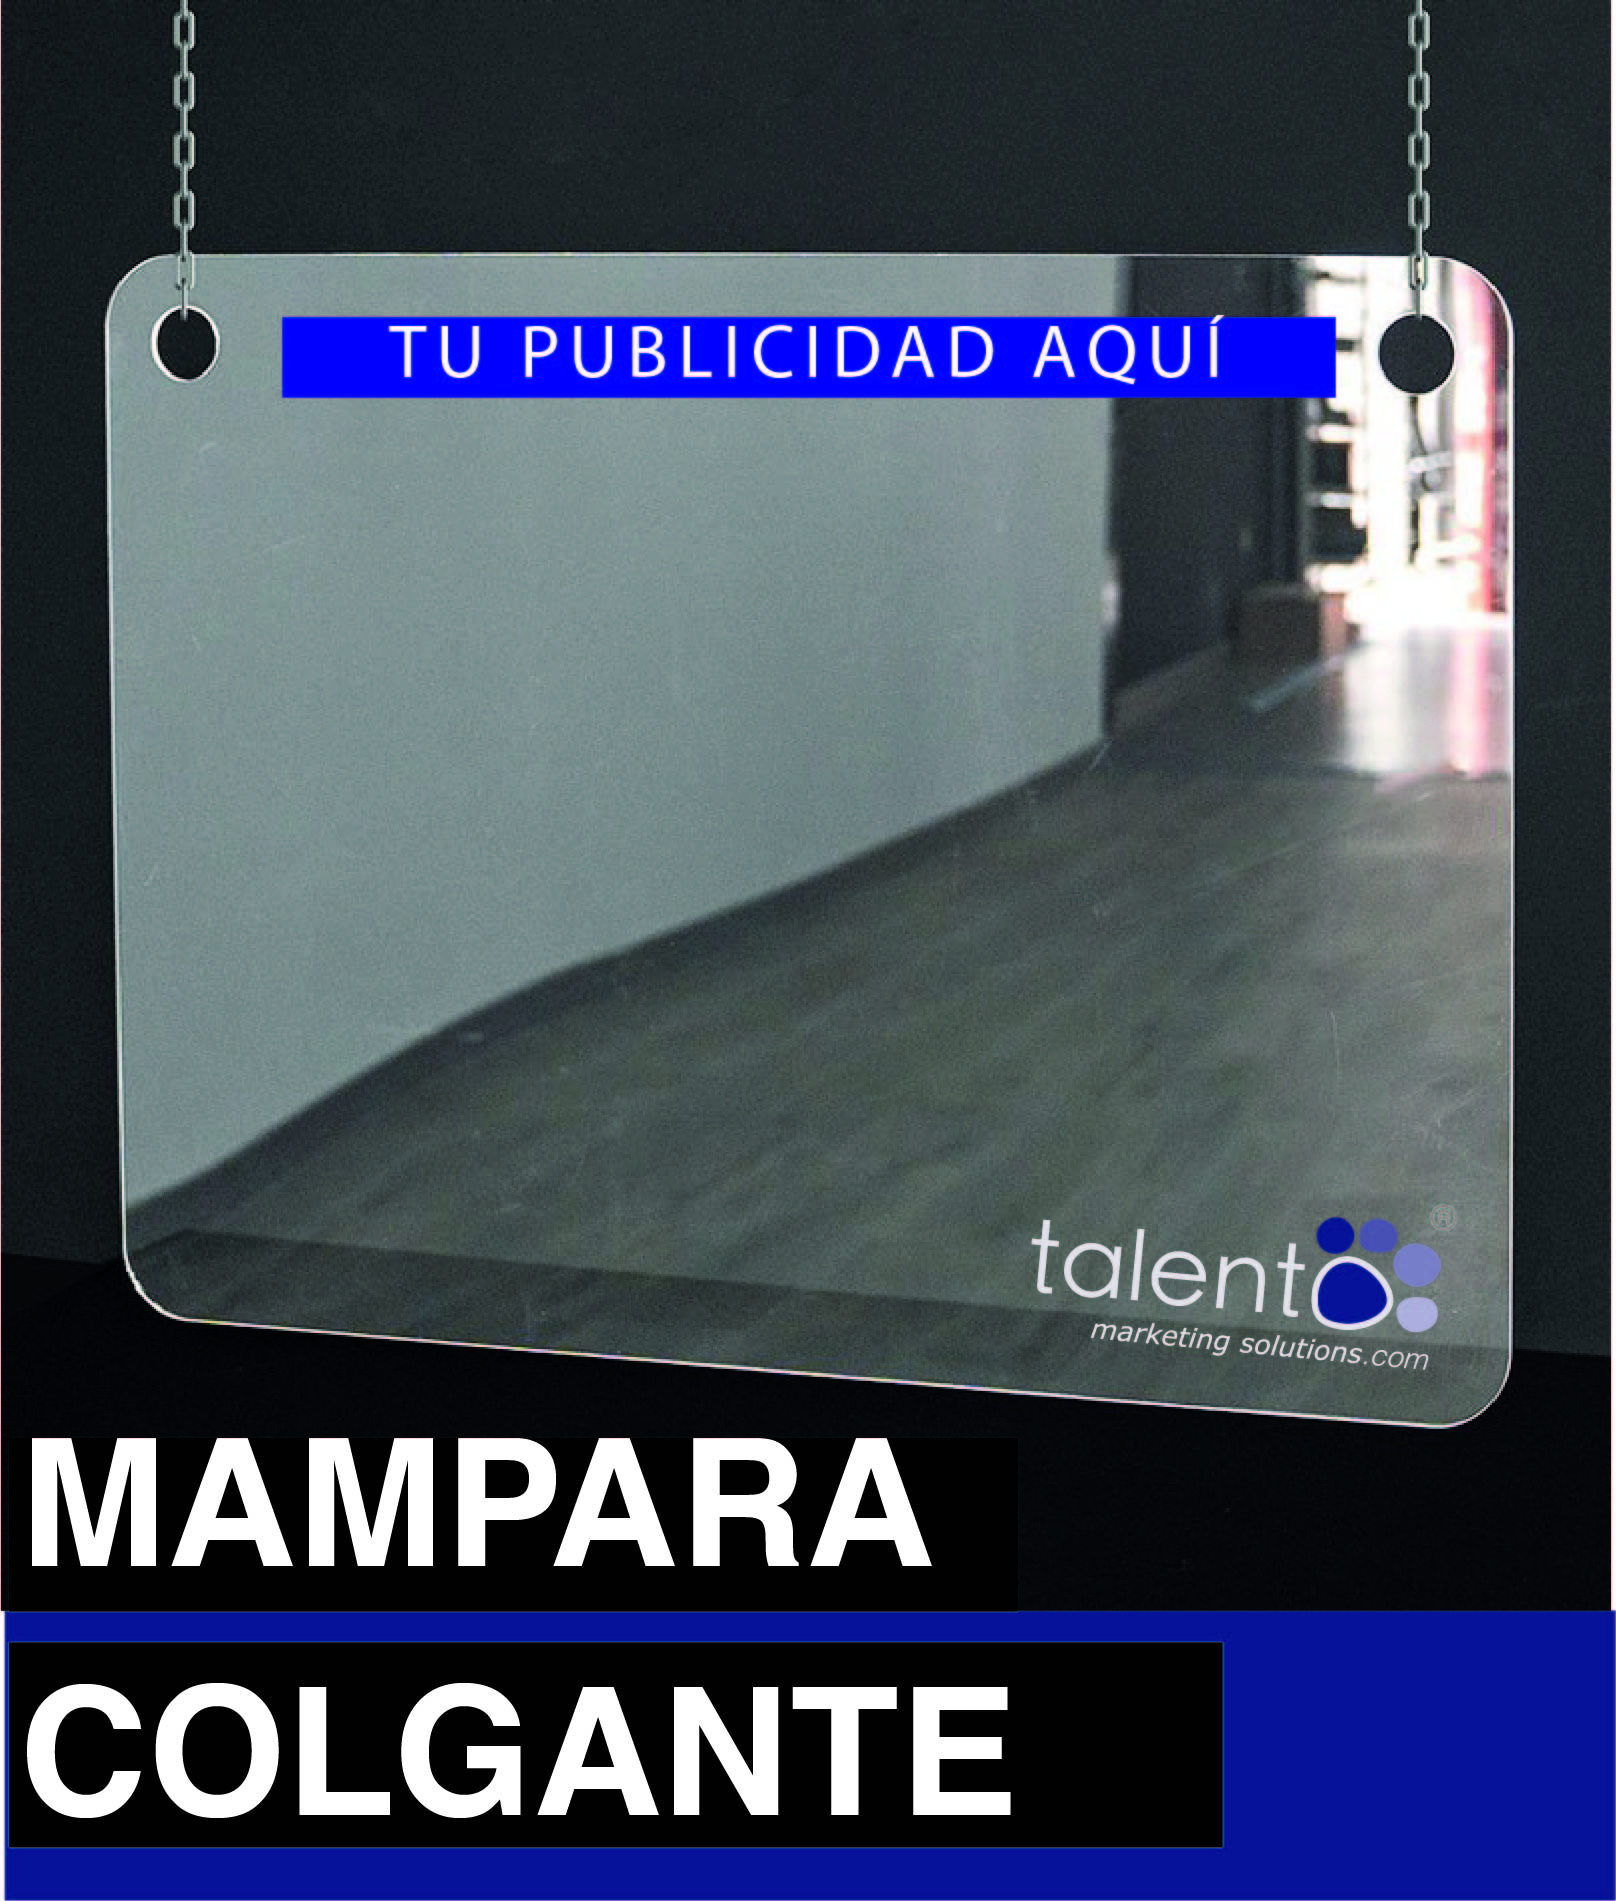 MAMPARAS-COLGANTES-COMERCIOS-SEVILLA-TALENTO-MARKETING-SOLUTIONS